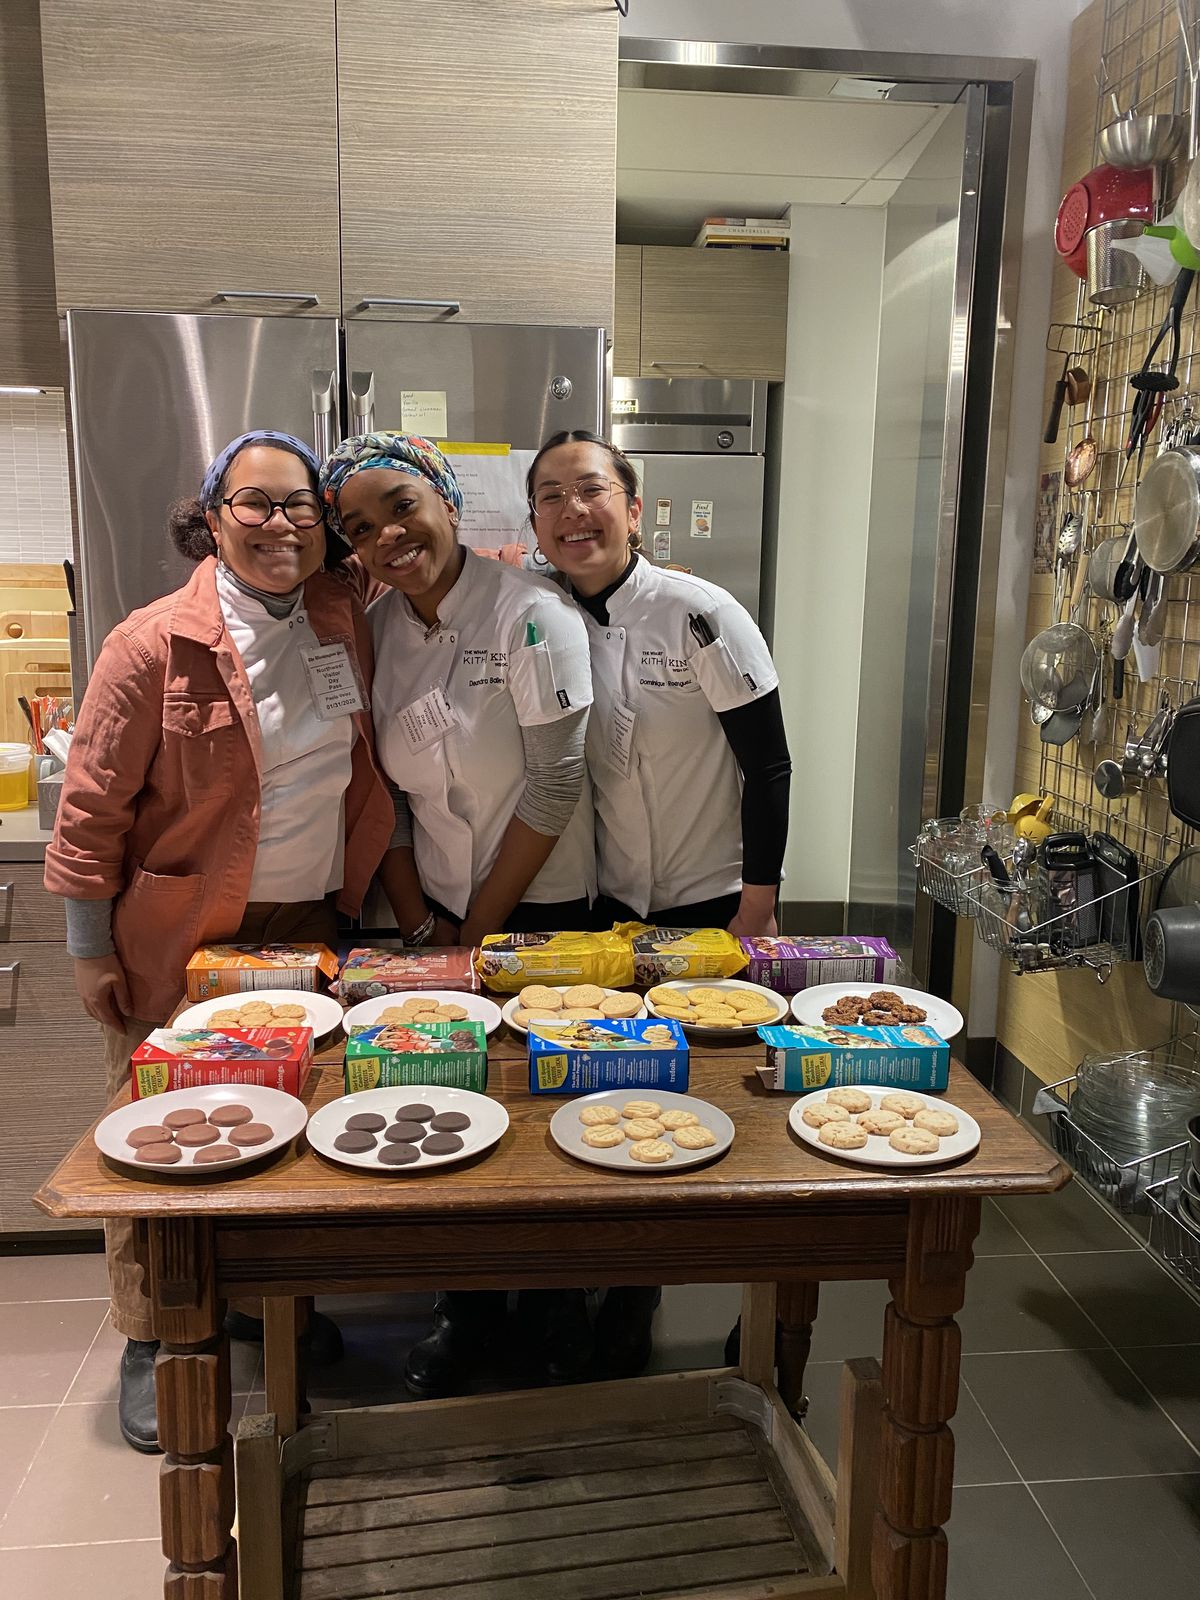 The Kith/Kin pastry team of (from left) Paola Velez, DeAndra Bailey, and Nikkie Rodriguez will all contribute to Bakers Against Racism.